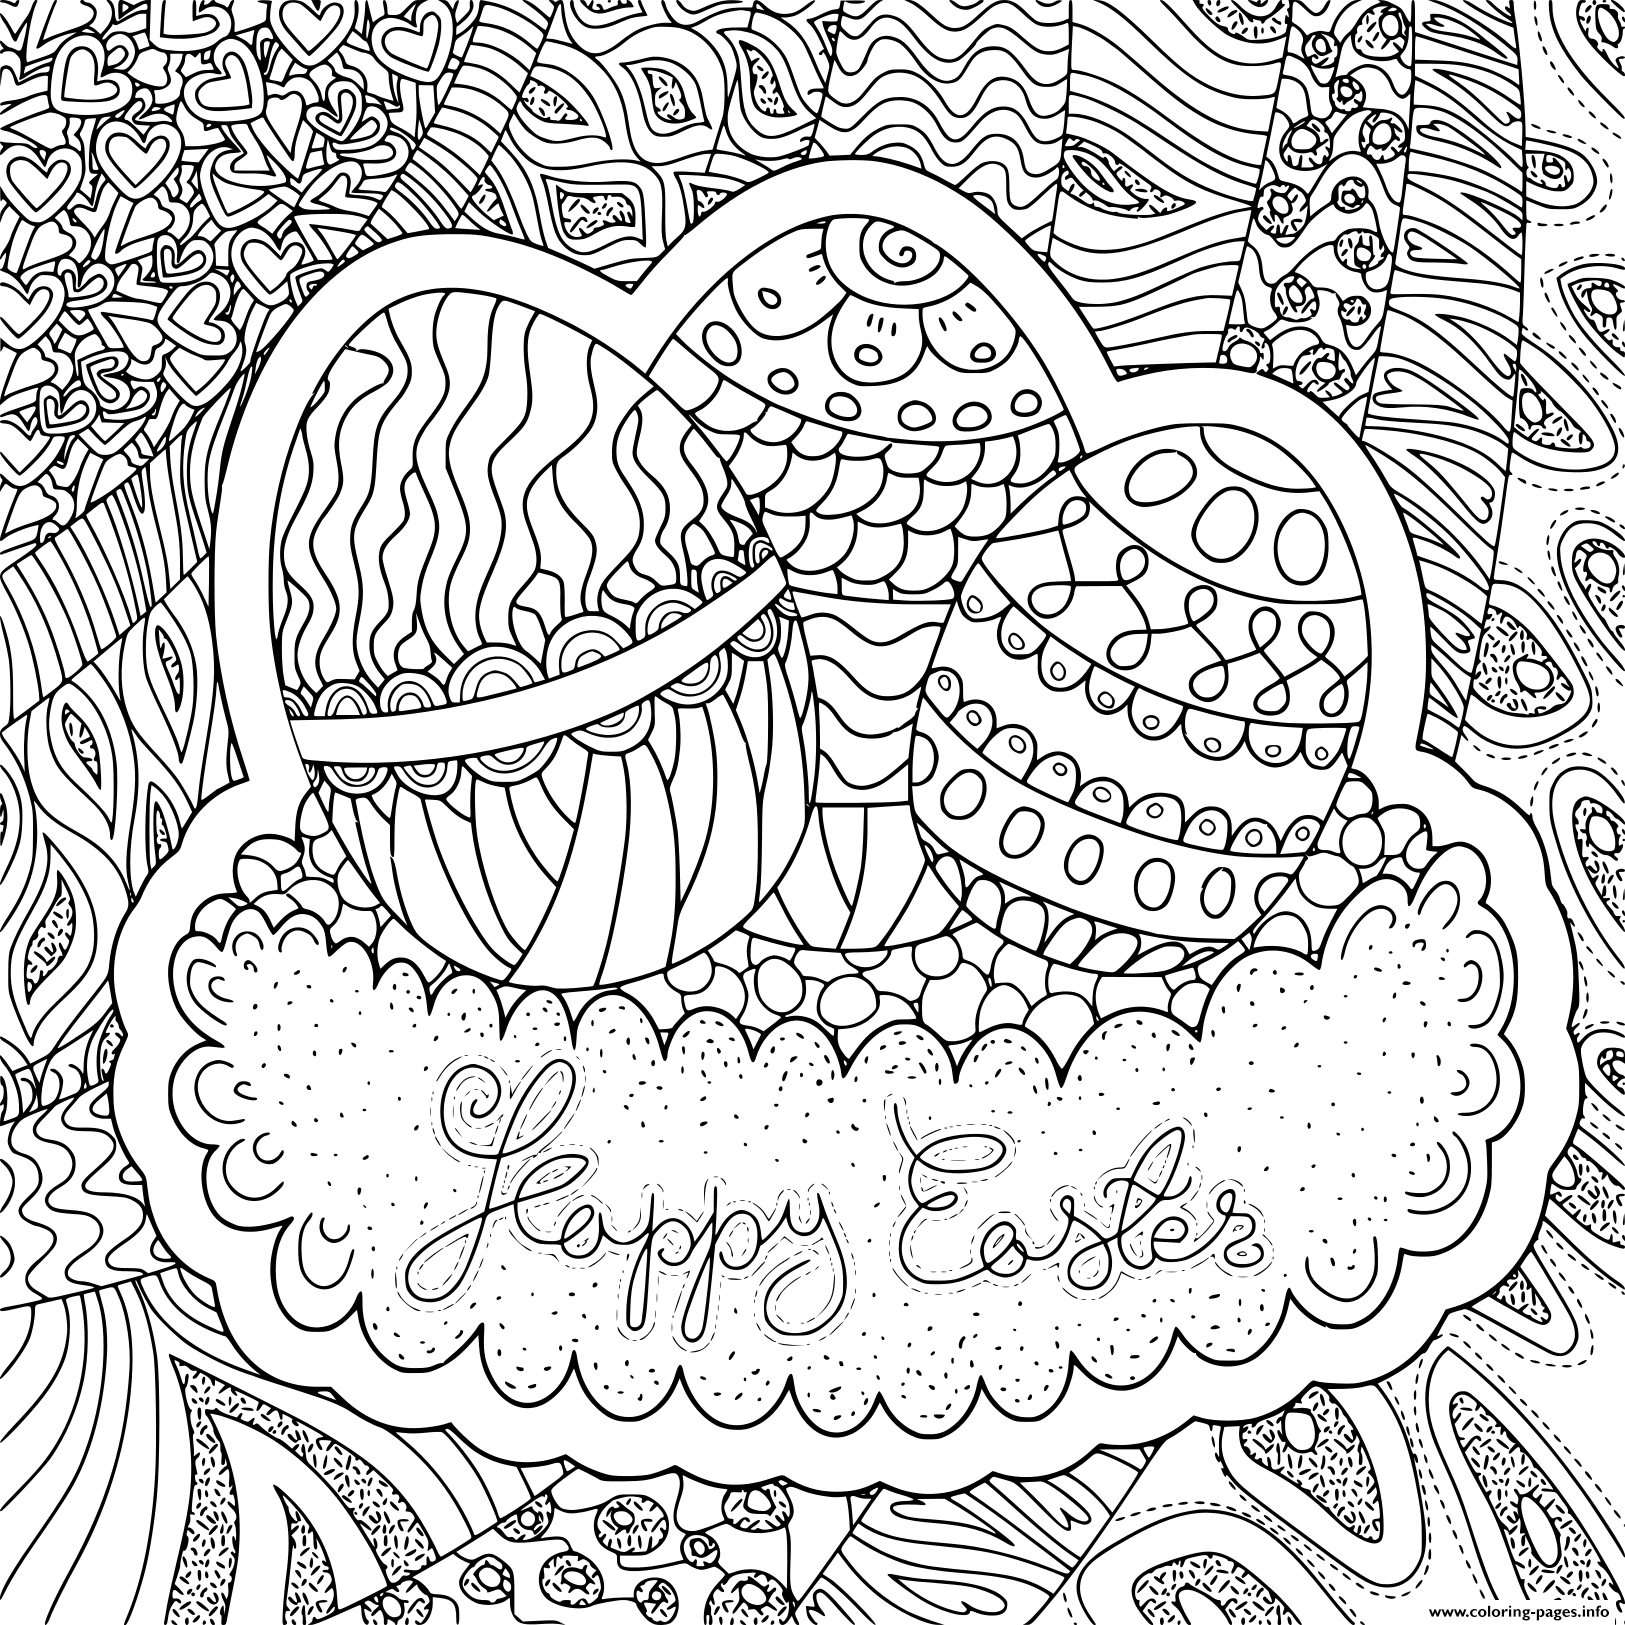 Chopkins Kleurplaat Square Shaped Pattern Happy Easter Coloring Pages Printable